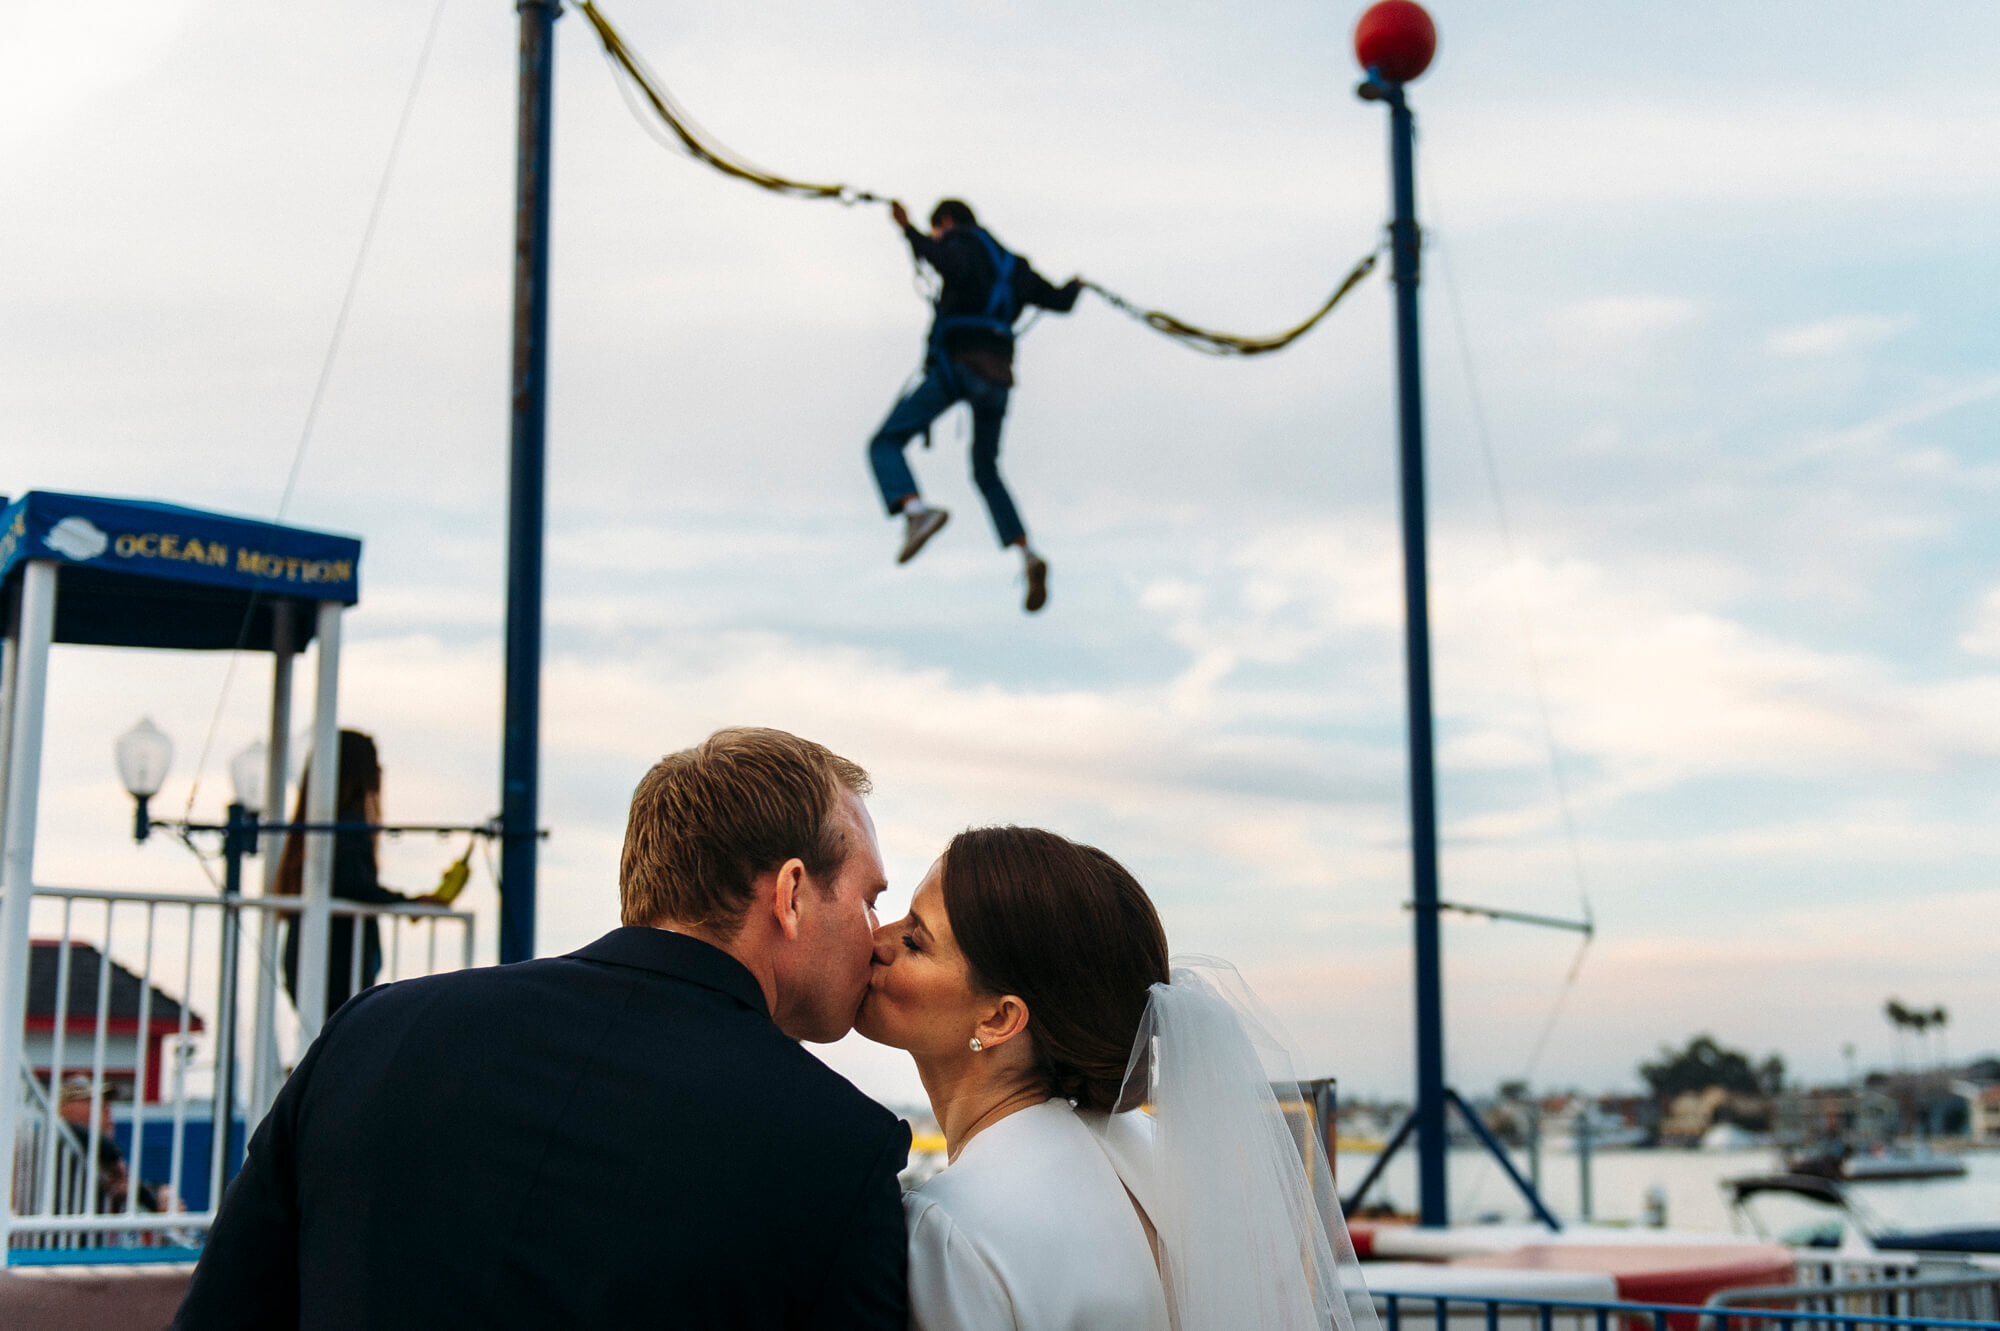 newport-harbor-yacht-club-wedding-balboa-island-wedding-photographer-orange-county-22.JPG